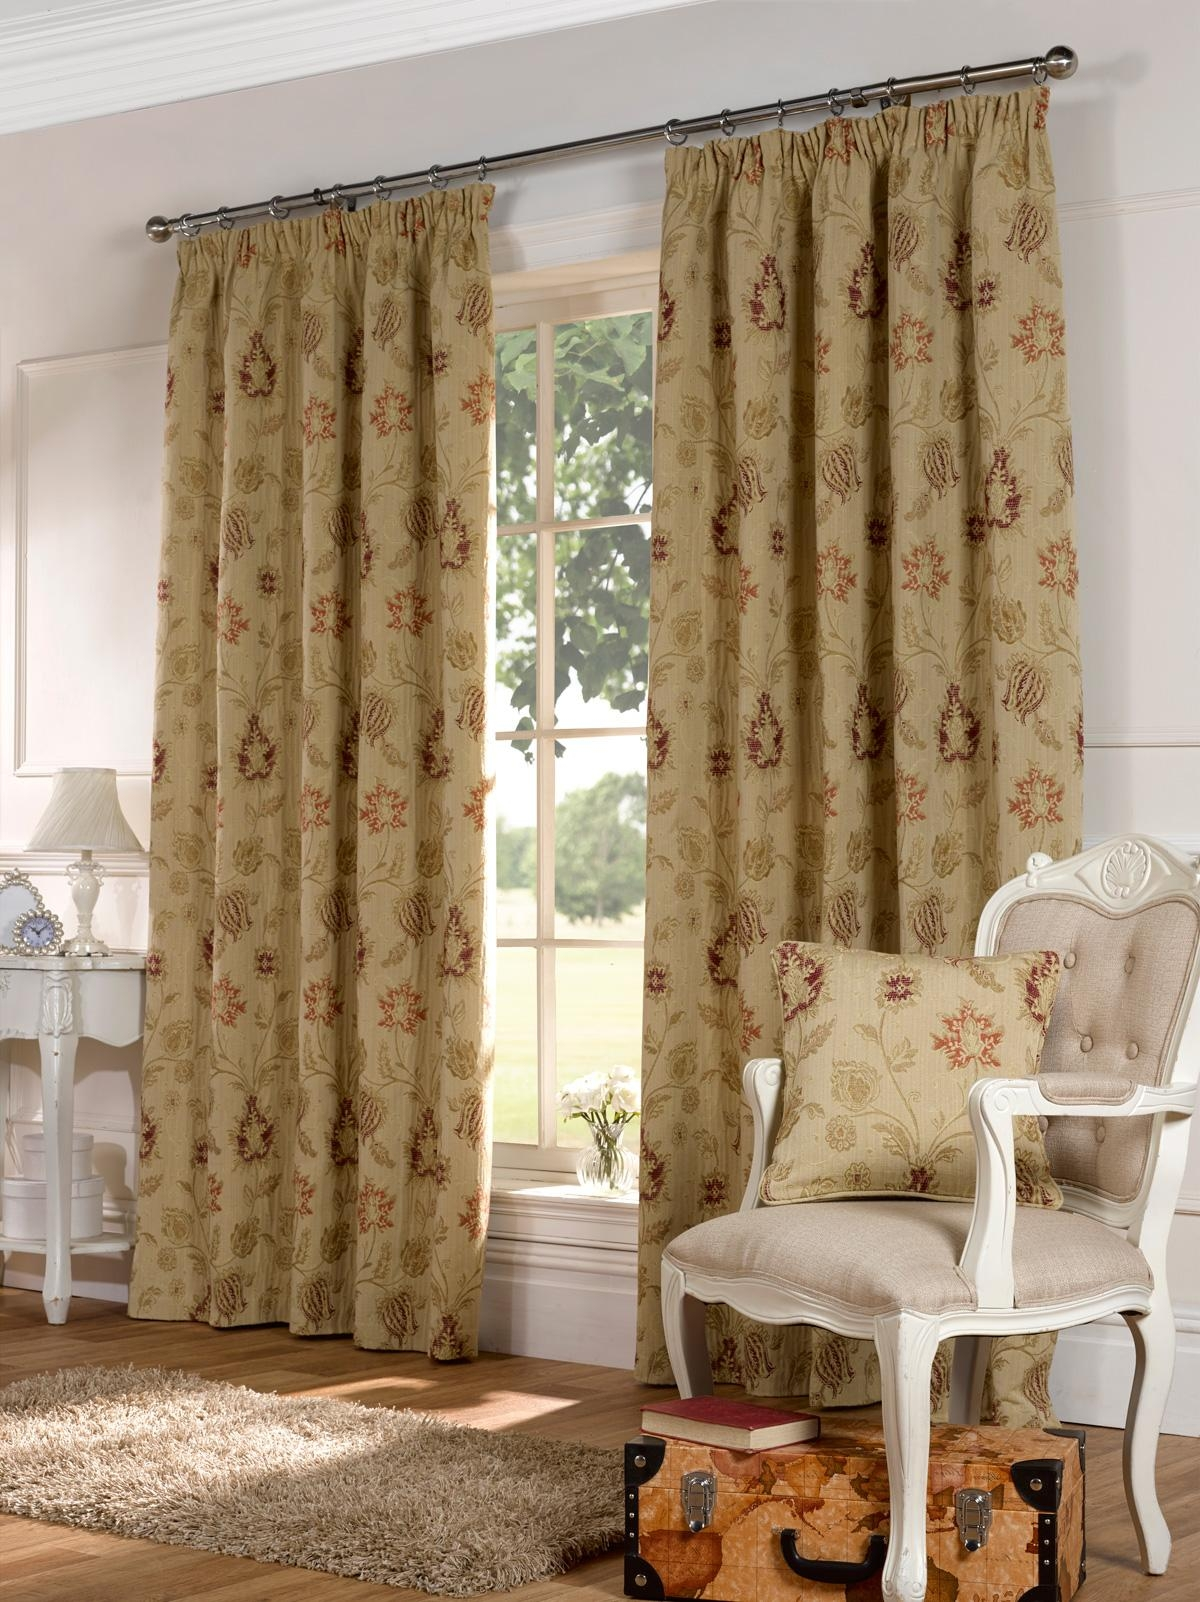 Clova Ready Made Curtains In Multi Free Uk Delivery Terrys Fabrics Regarding Ready Made Curtains For Bay Windows (Image 5 of 15)